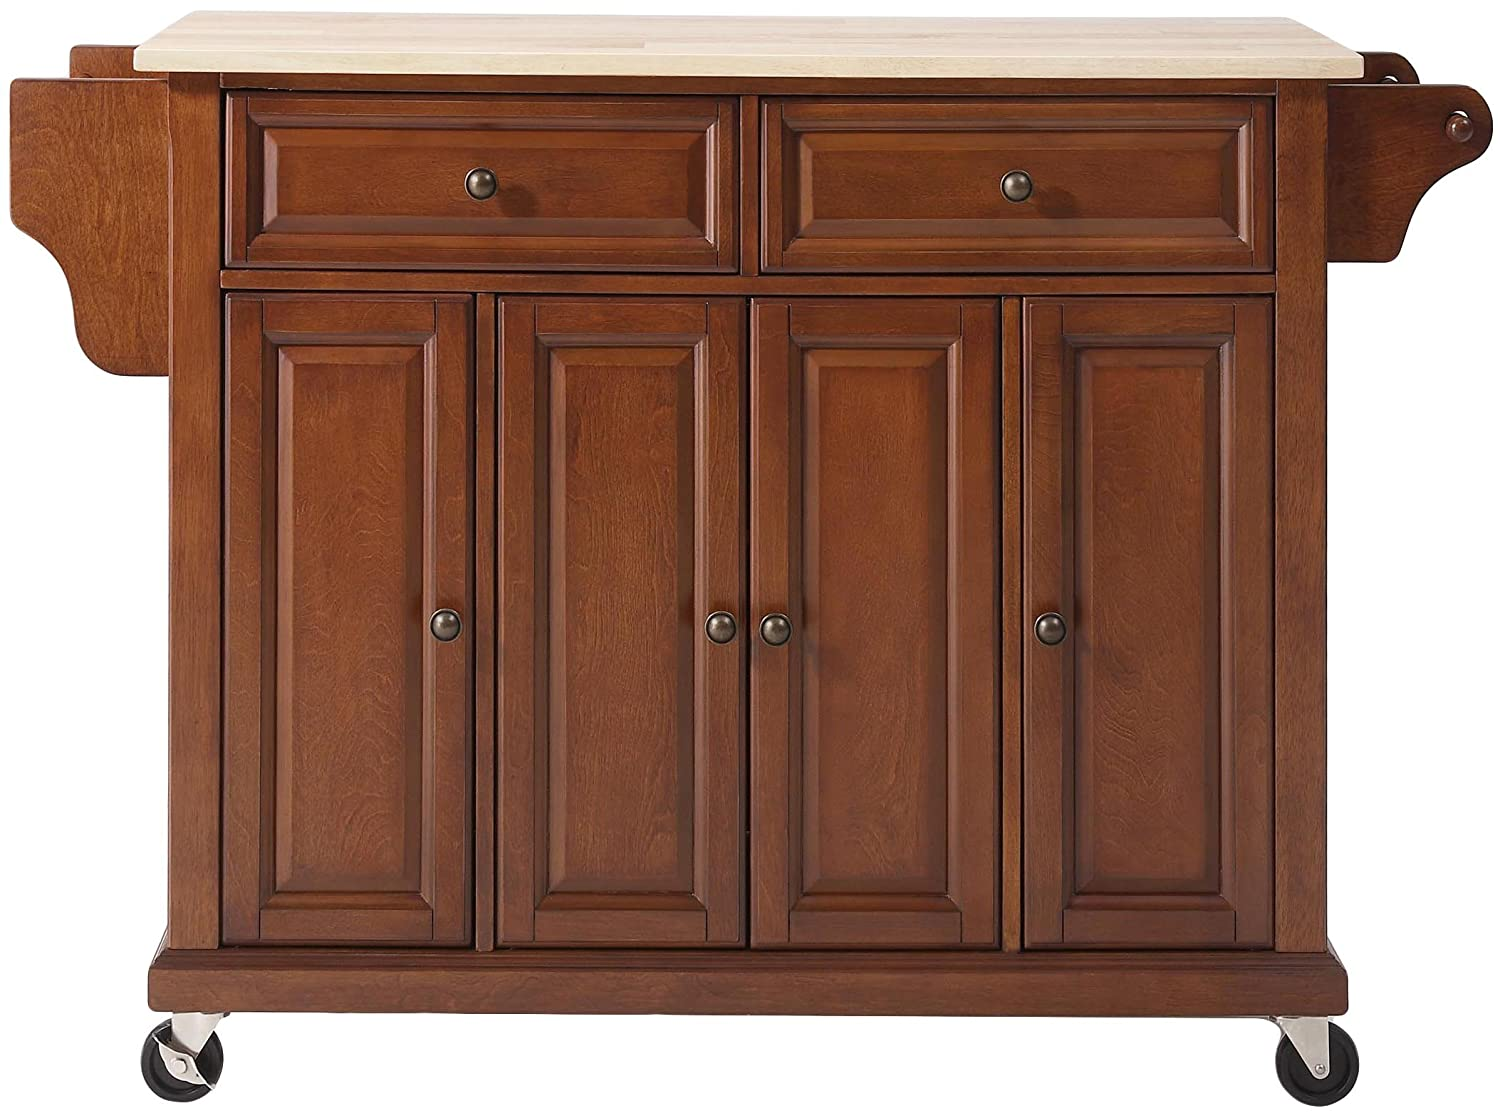 Crosley Furniture Rolling Kitchen Island with Natural Wood Top - Classic Cherry